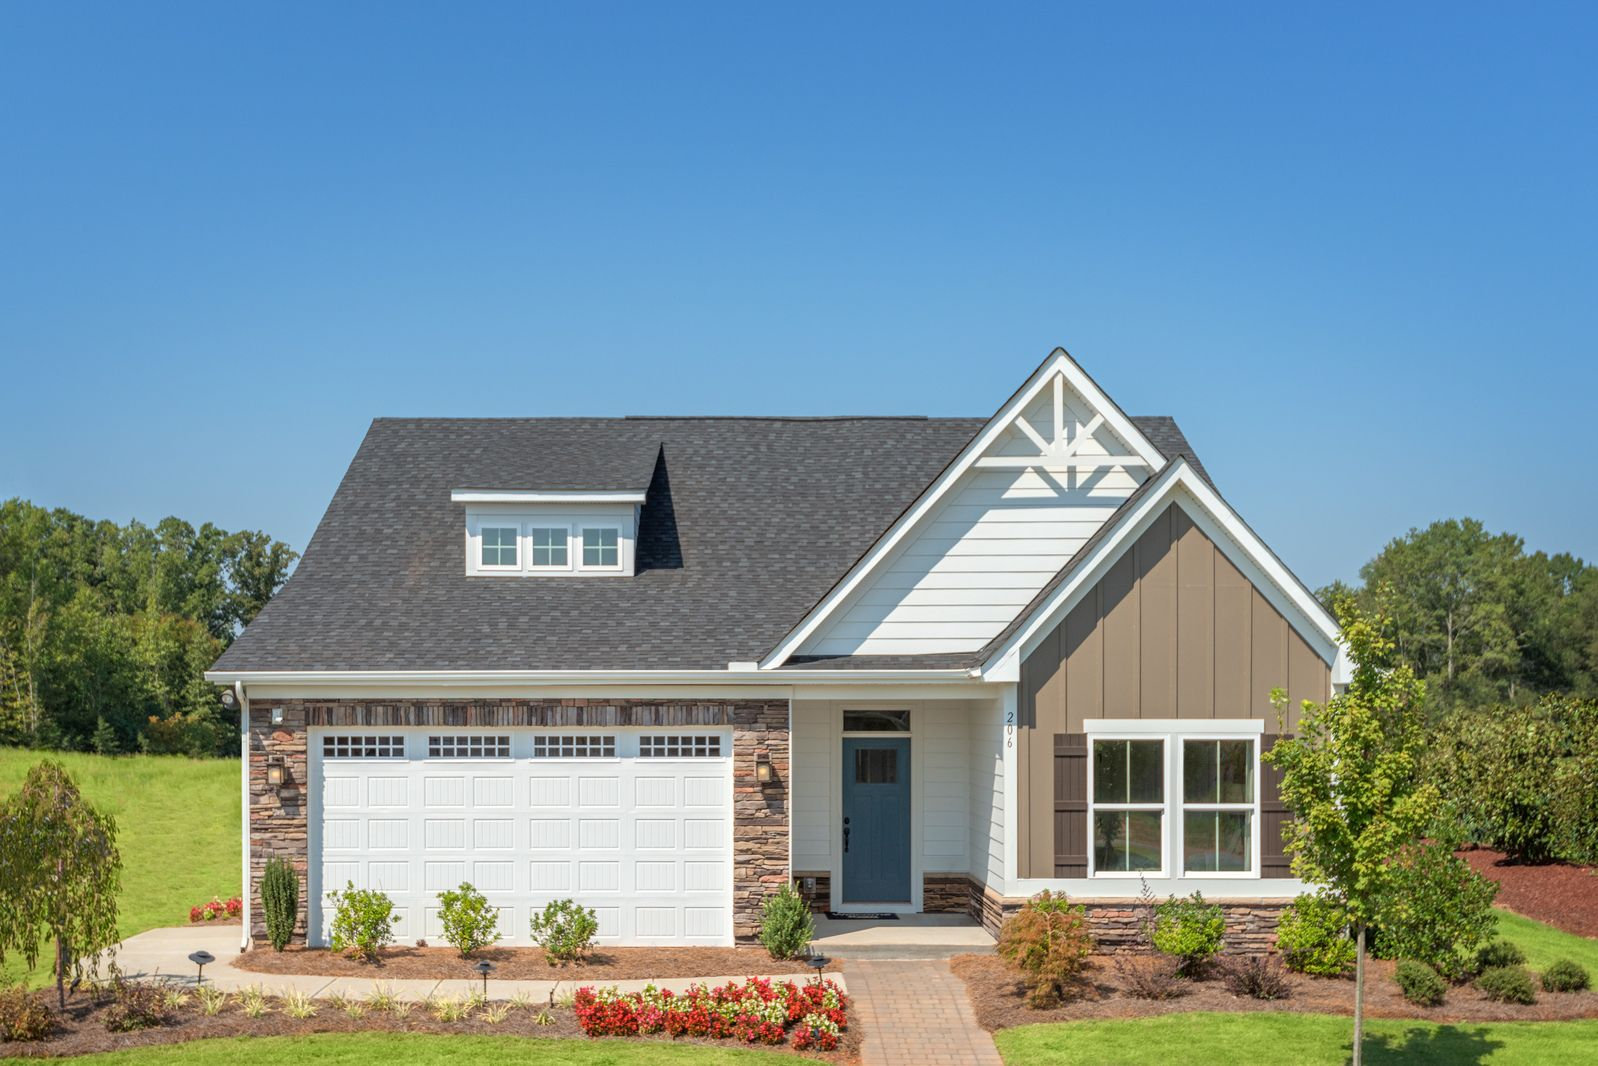 One-level living:Schedule a visitto this exciting new community with 4 distinct villages and amenities for everyone